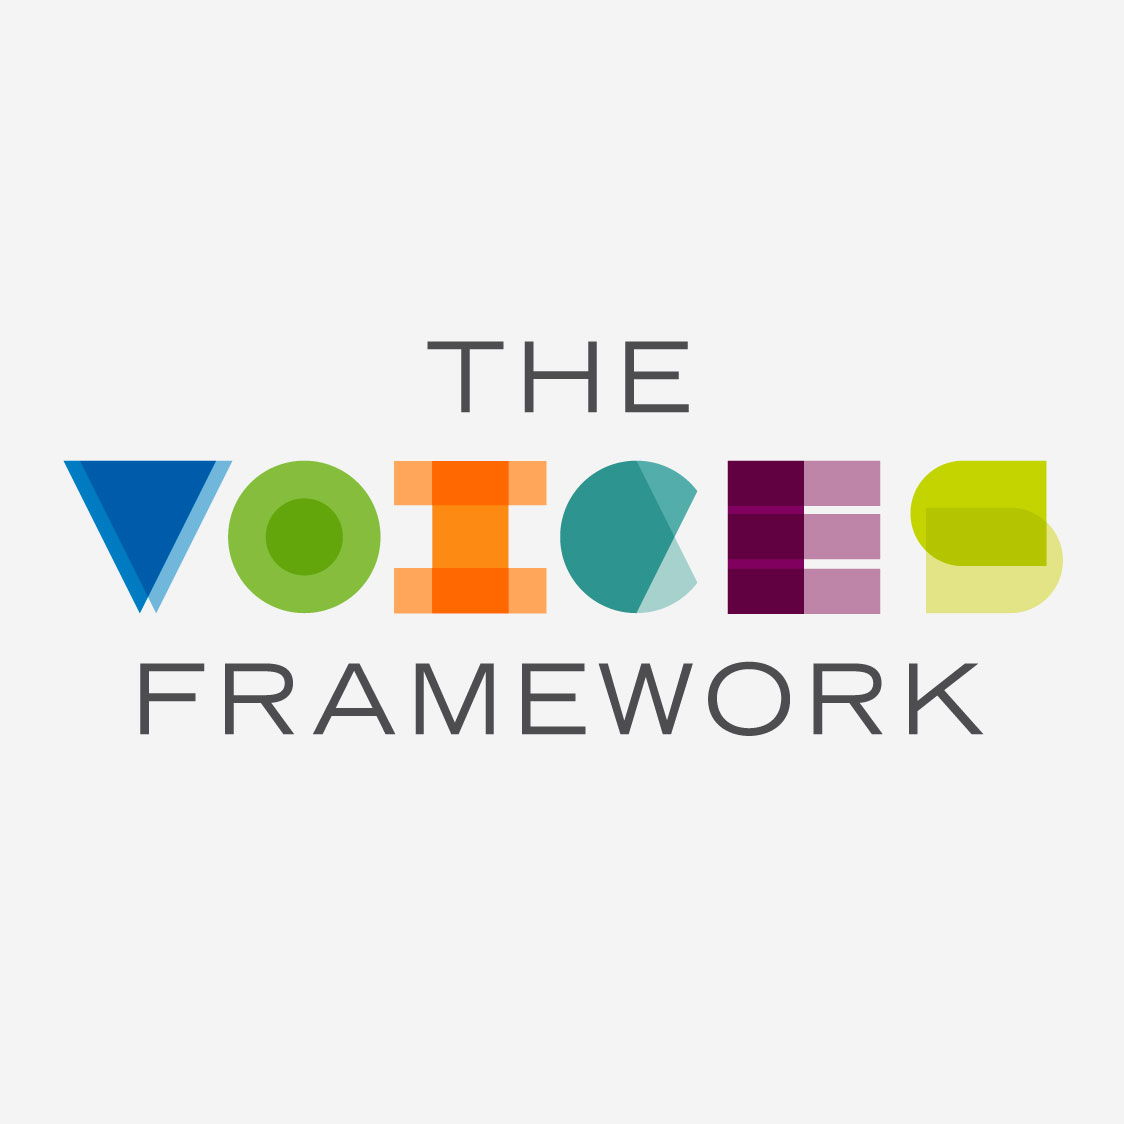 Logo for The Voices Framework. VOICES is in colorful letters, made up of abstract shapes.